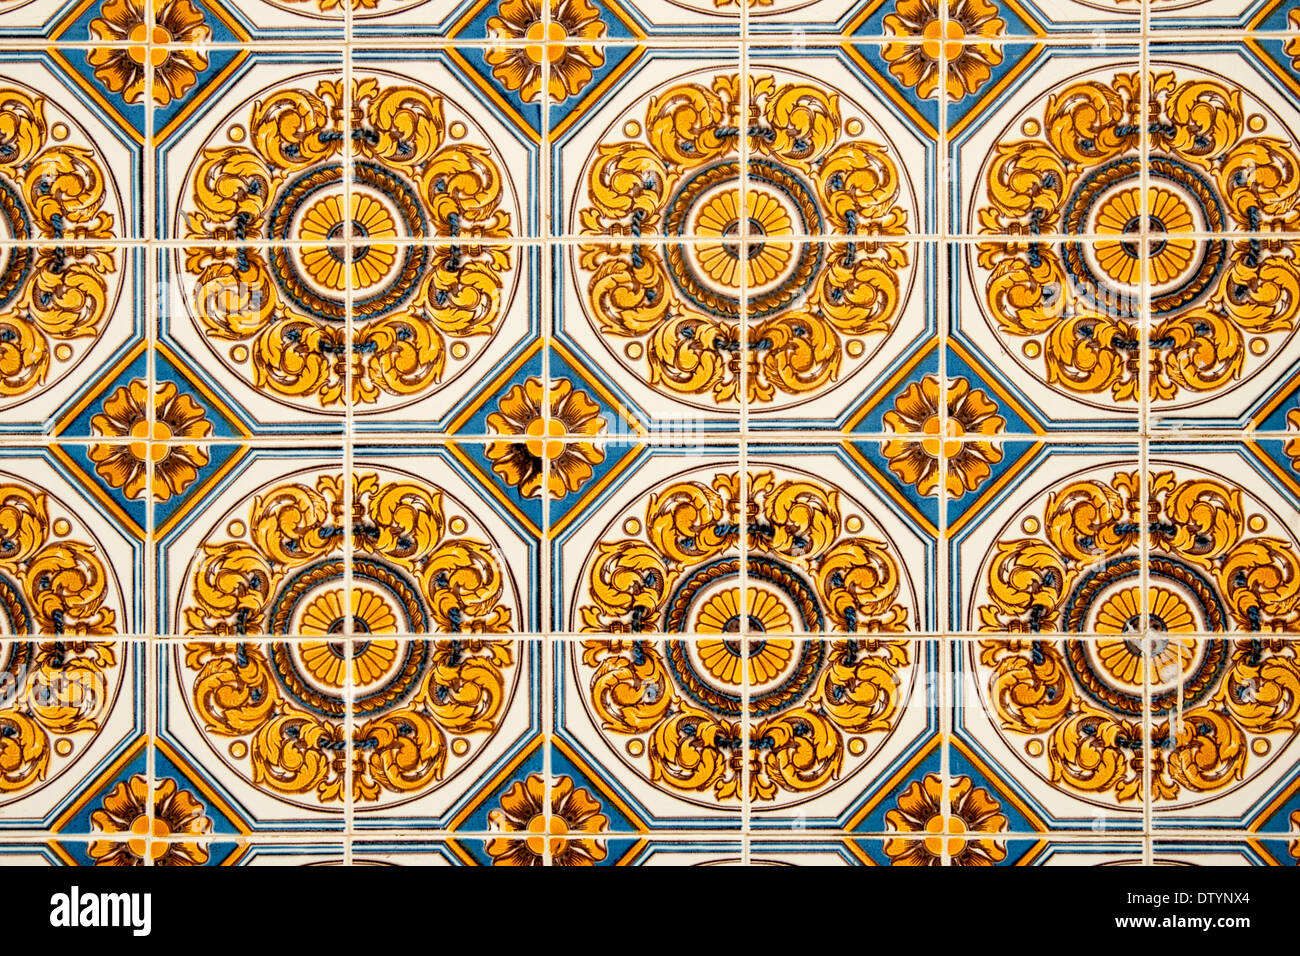 Blue ceramic tiles on wall stock photos blue ceramic tiles on gold and blue patterned ceramic tiles on an external wall in portugal stock image dailygadgetfo Image collections